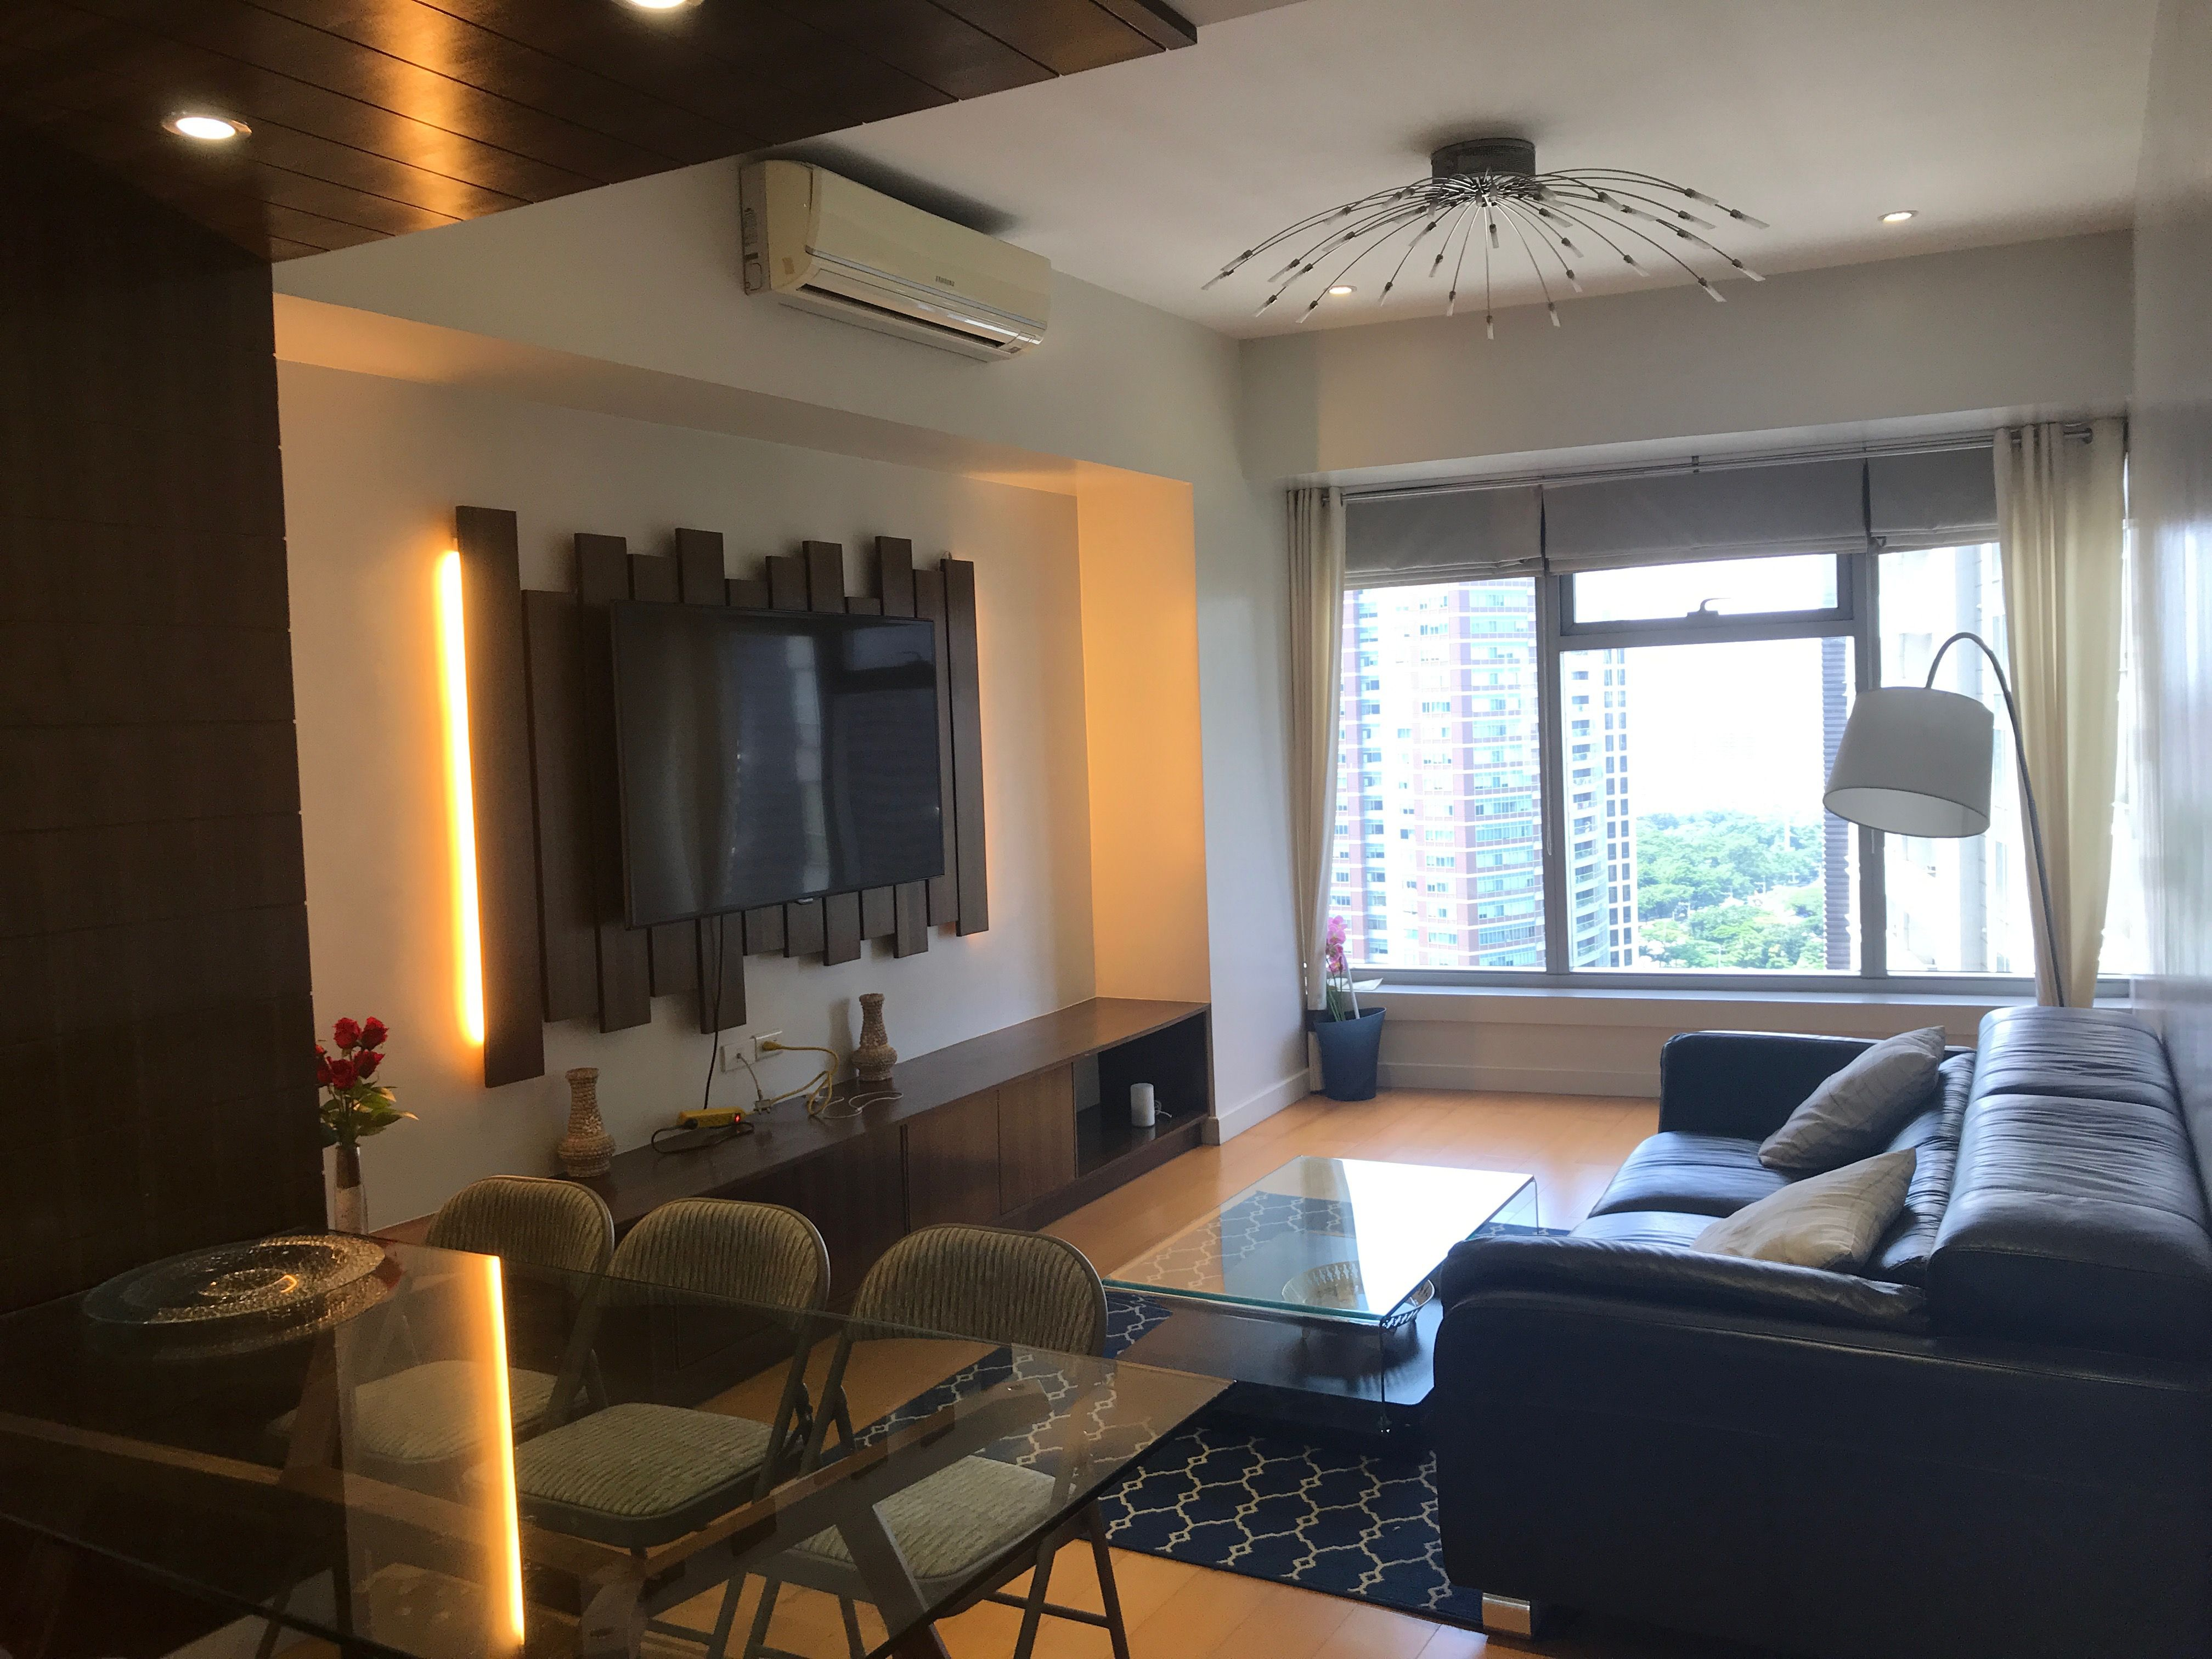 2 Bedroom Condo for Rent in BGC Taguig City, 78sqm